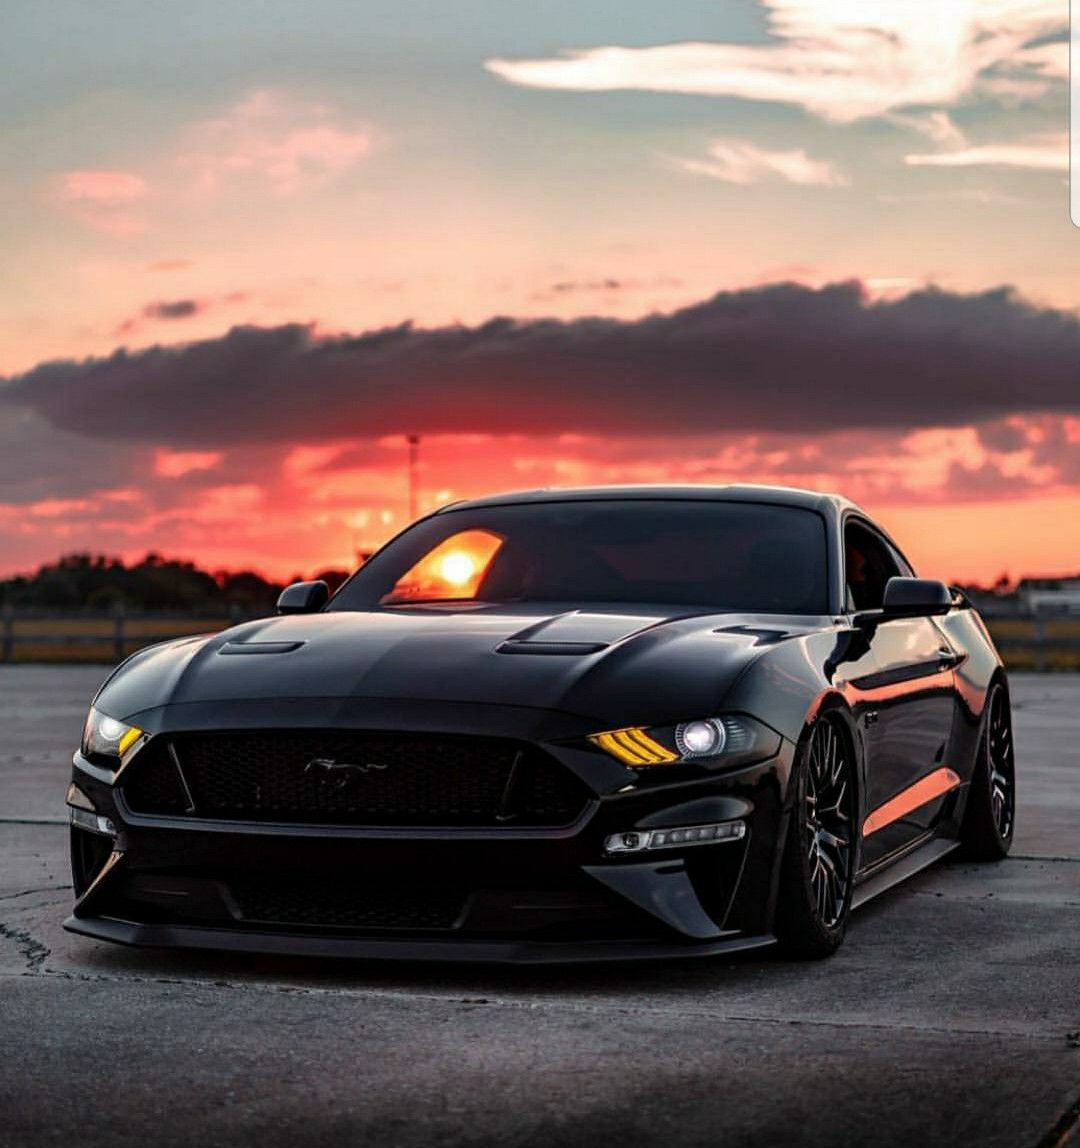 American muscle cars mustang image by ray wilkins on